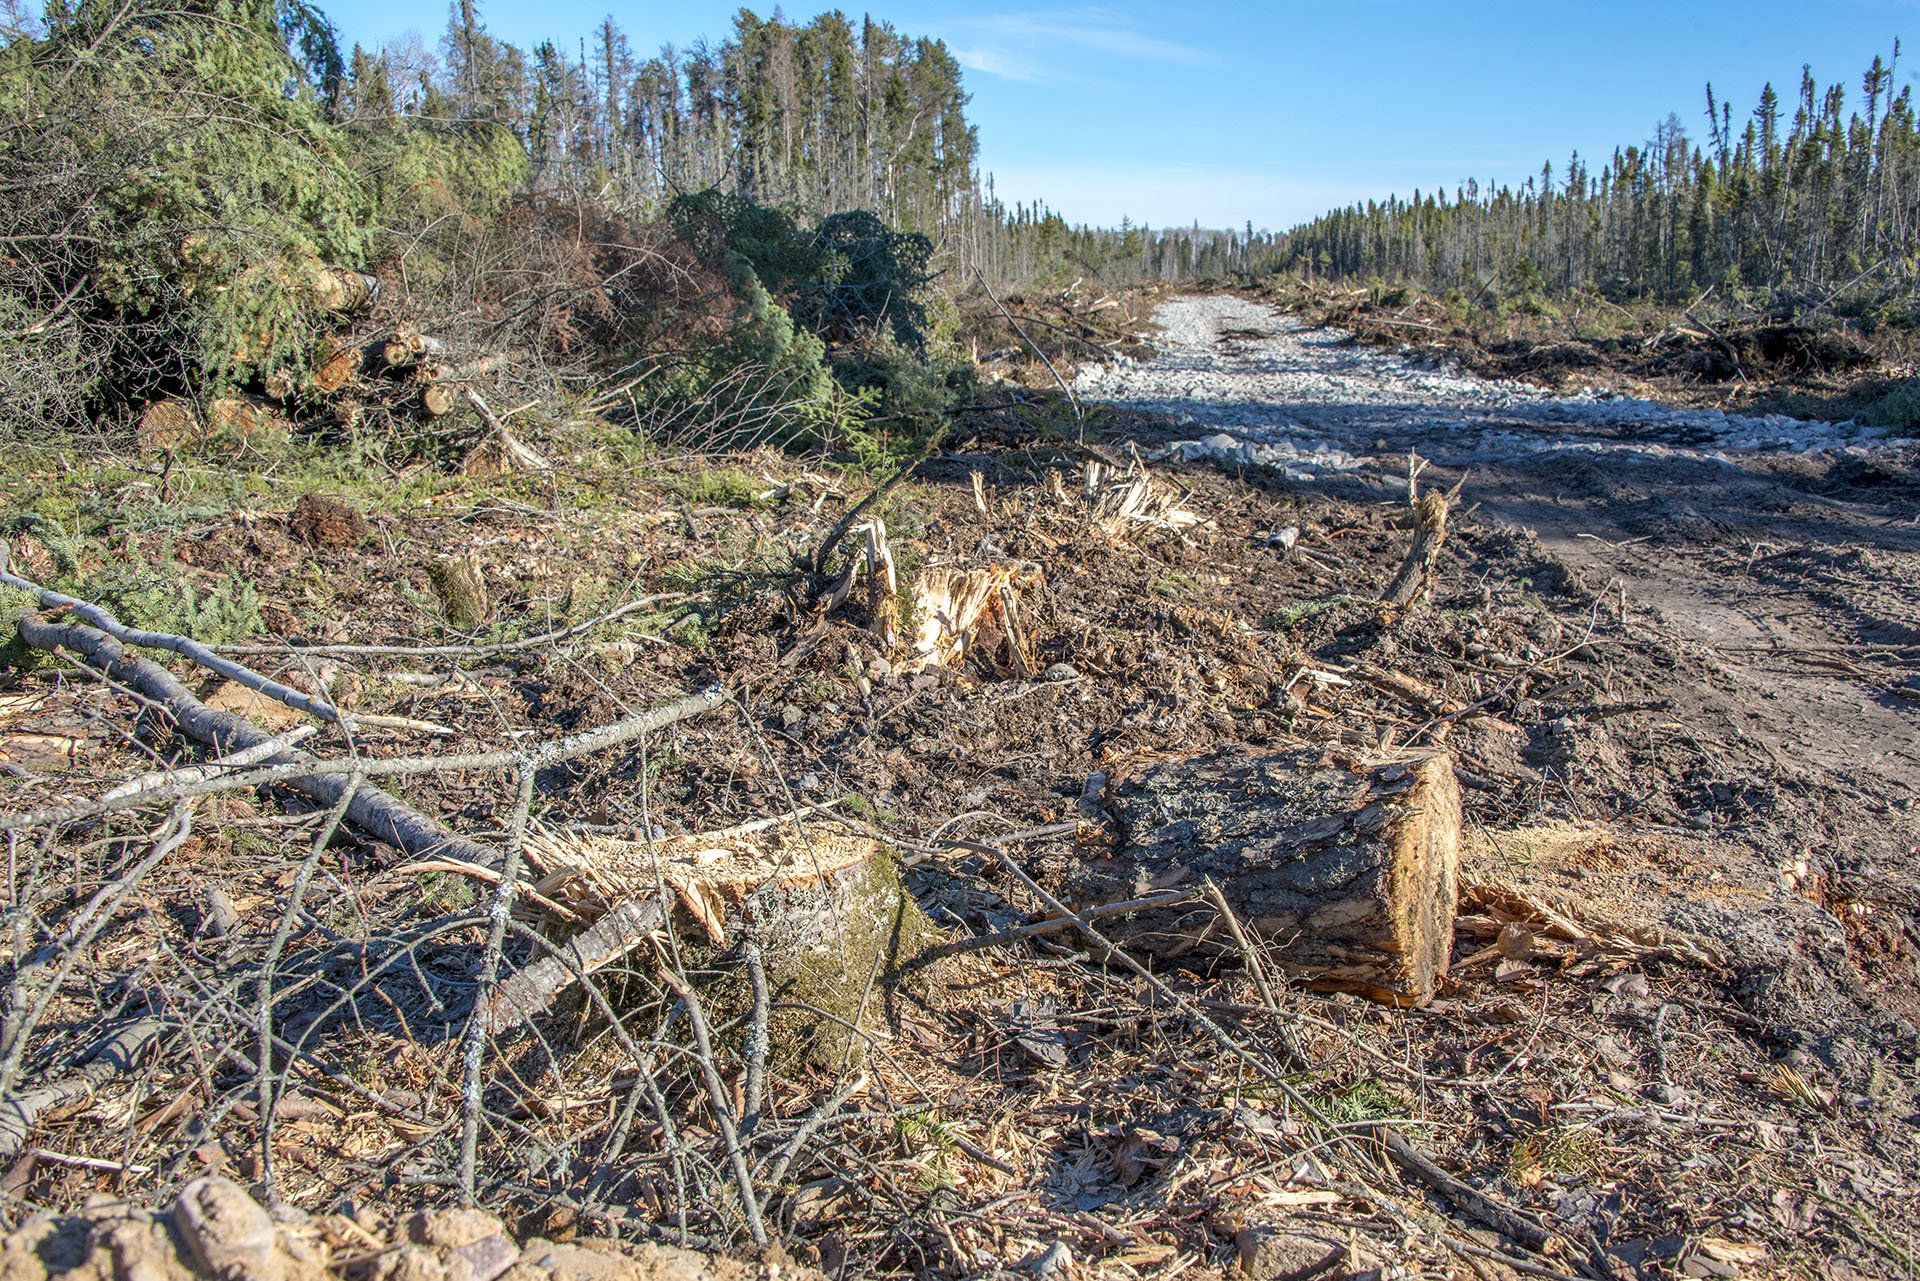 The Manitoba government's assessment process allowed clearcutting before an environment license was even issued